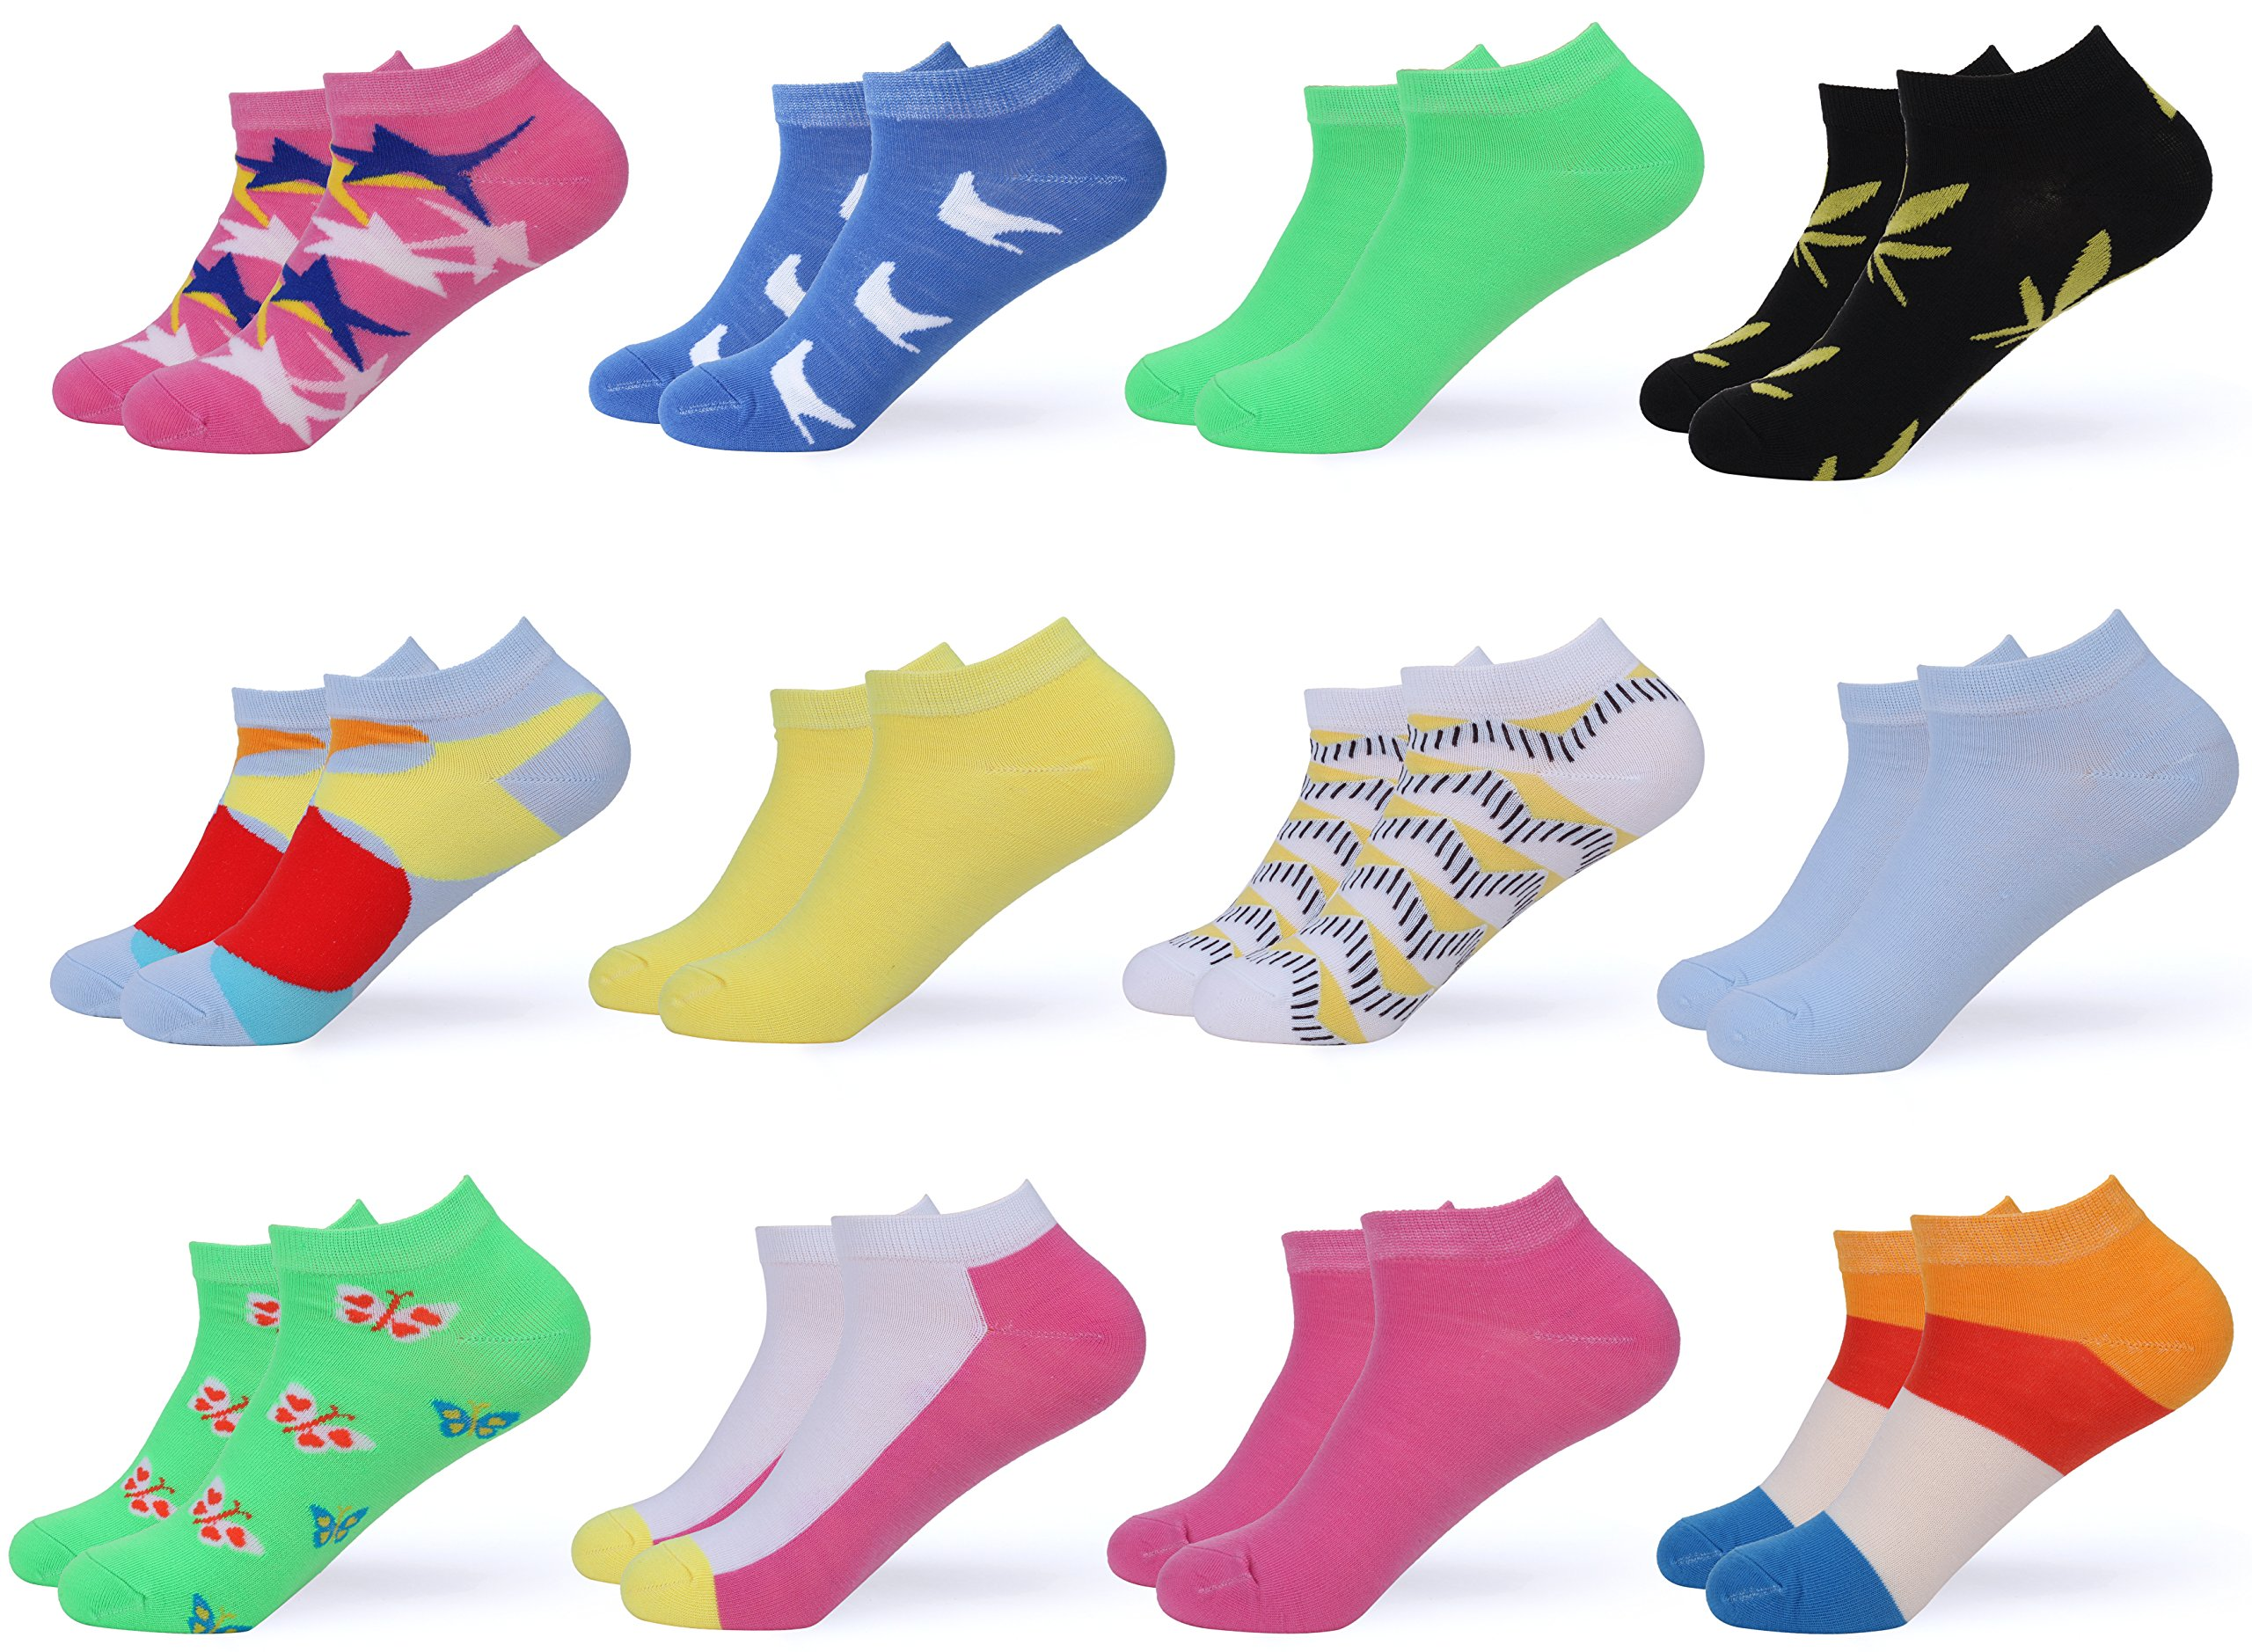 Gallery Seven Women's Ankle Socks - Low Cut Colorful Socks For Women - Size 9-11 - 12 Pack (Style - 1)